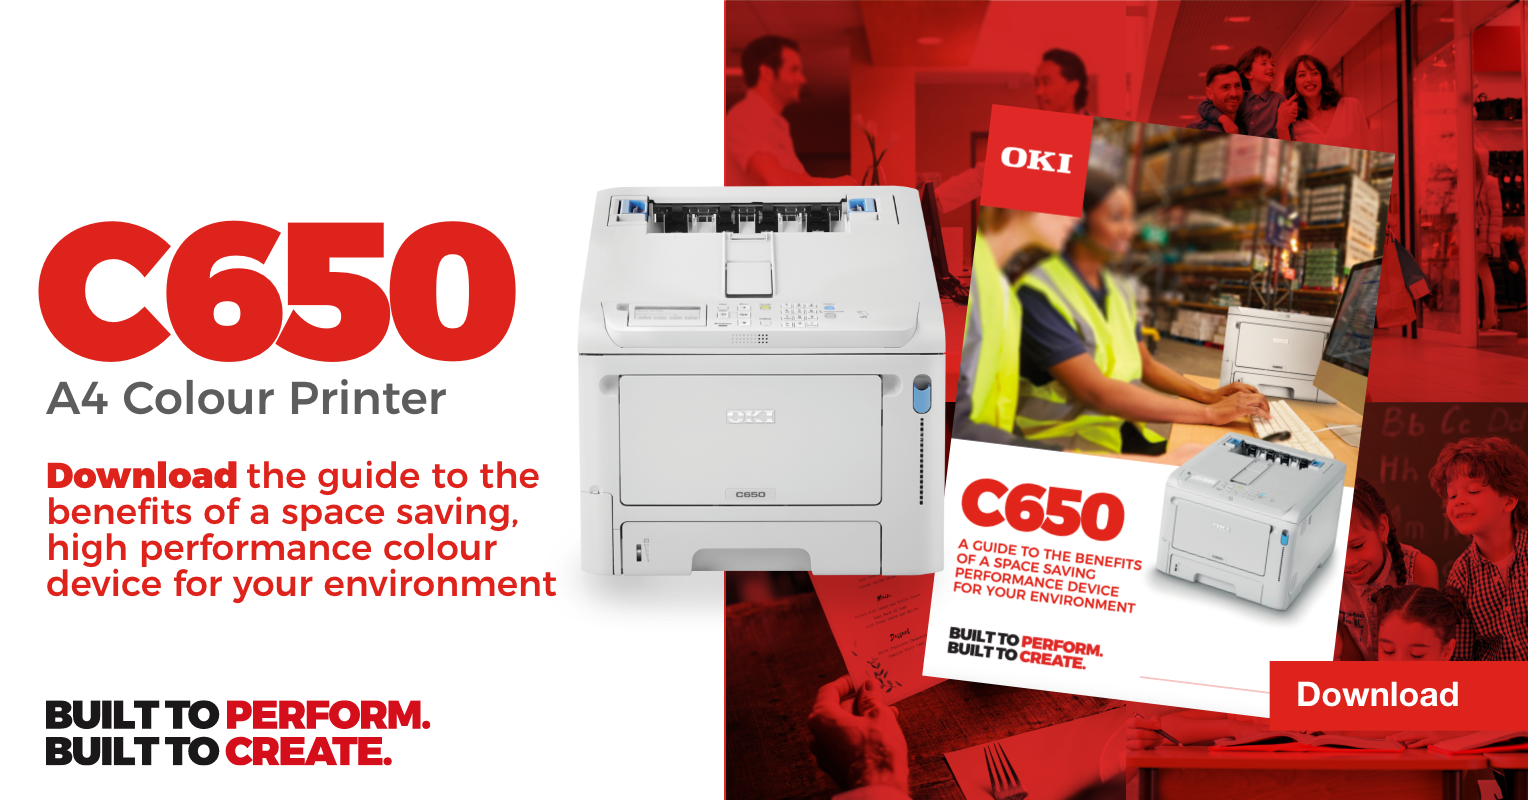 OKI C650 New A4 Colour LED Printer